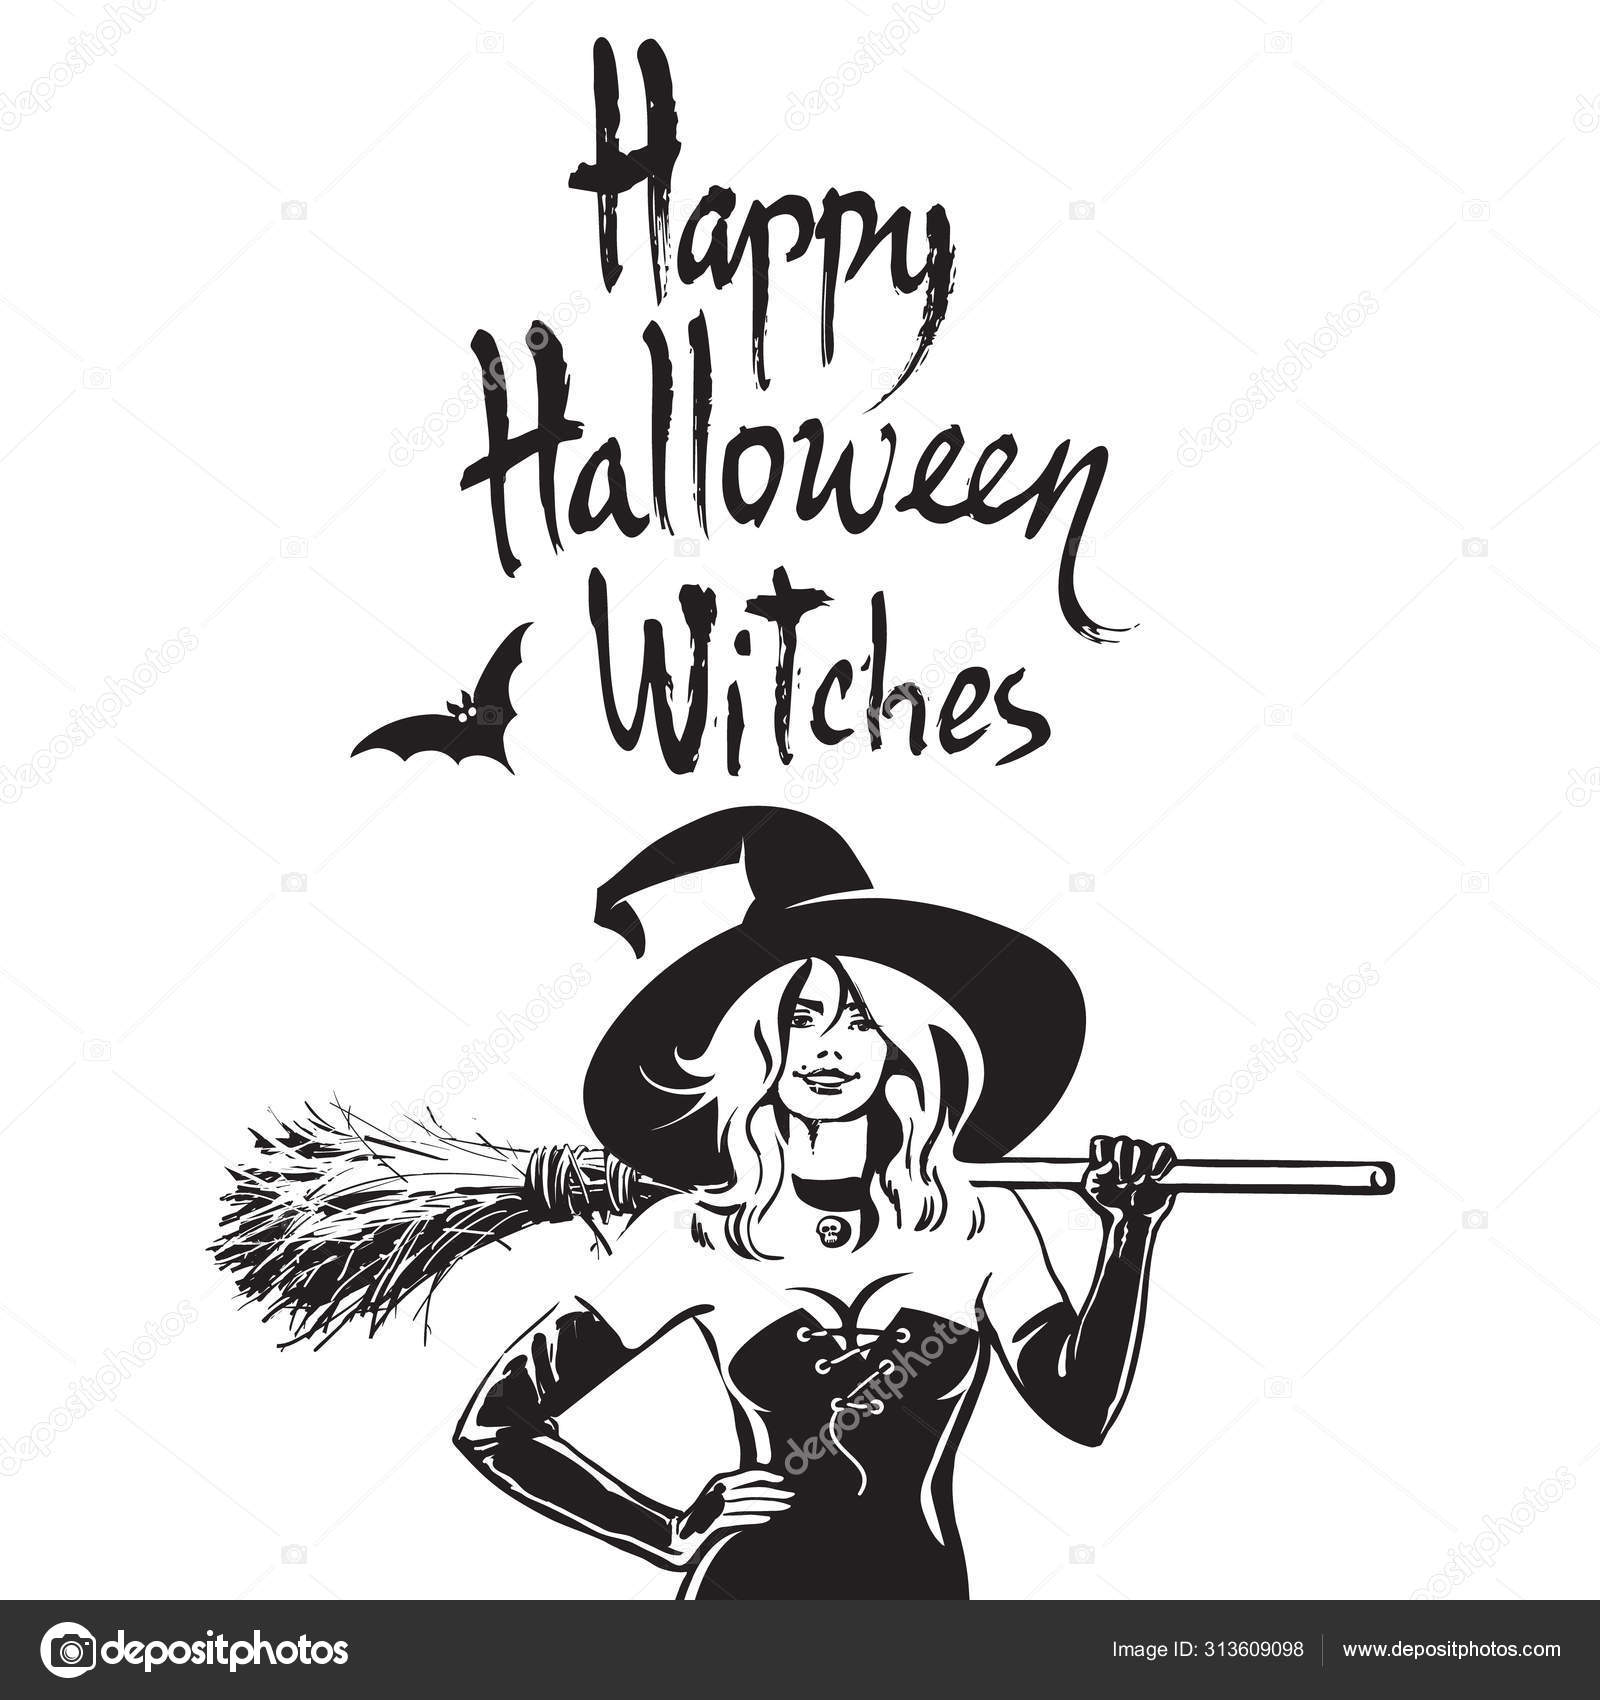 Beautiful Sexy Witch Holding Broomstick Happy Halloween Witches Funny Halloween Phrase Hand Drawn Brush Lettering Stock Vector C Uncleleo 313609098